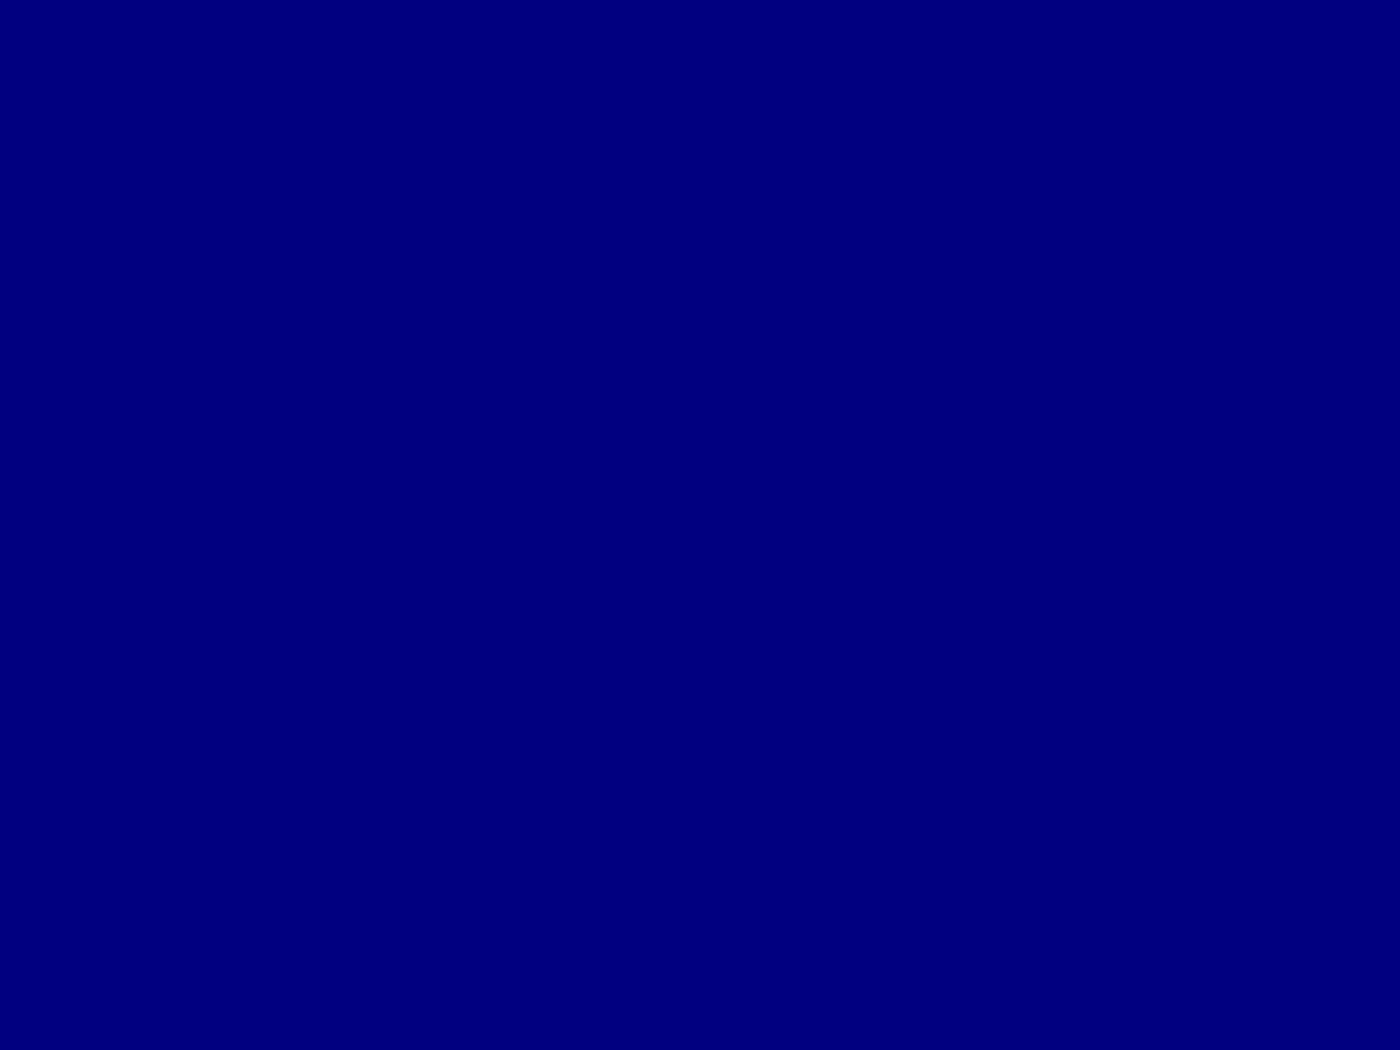 1400x1050 Navy Blue Solid Color Background